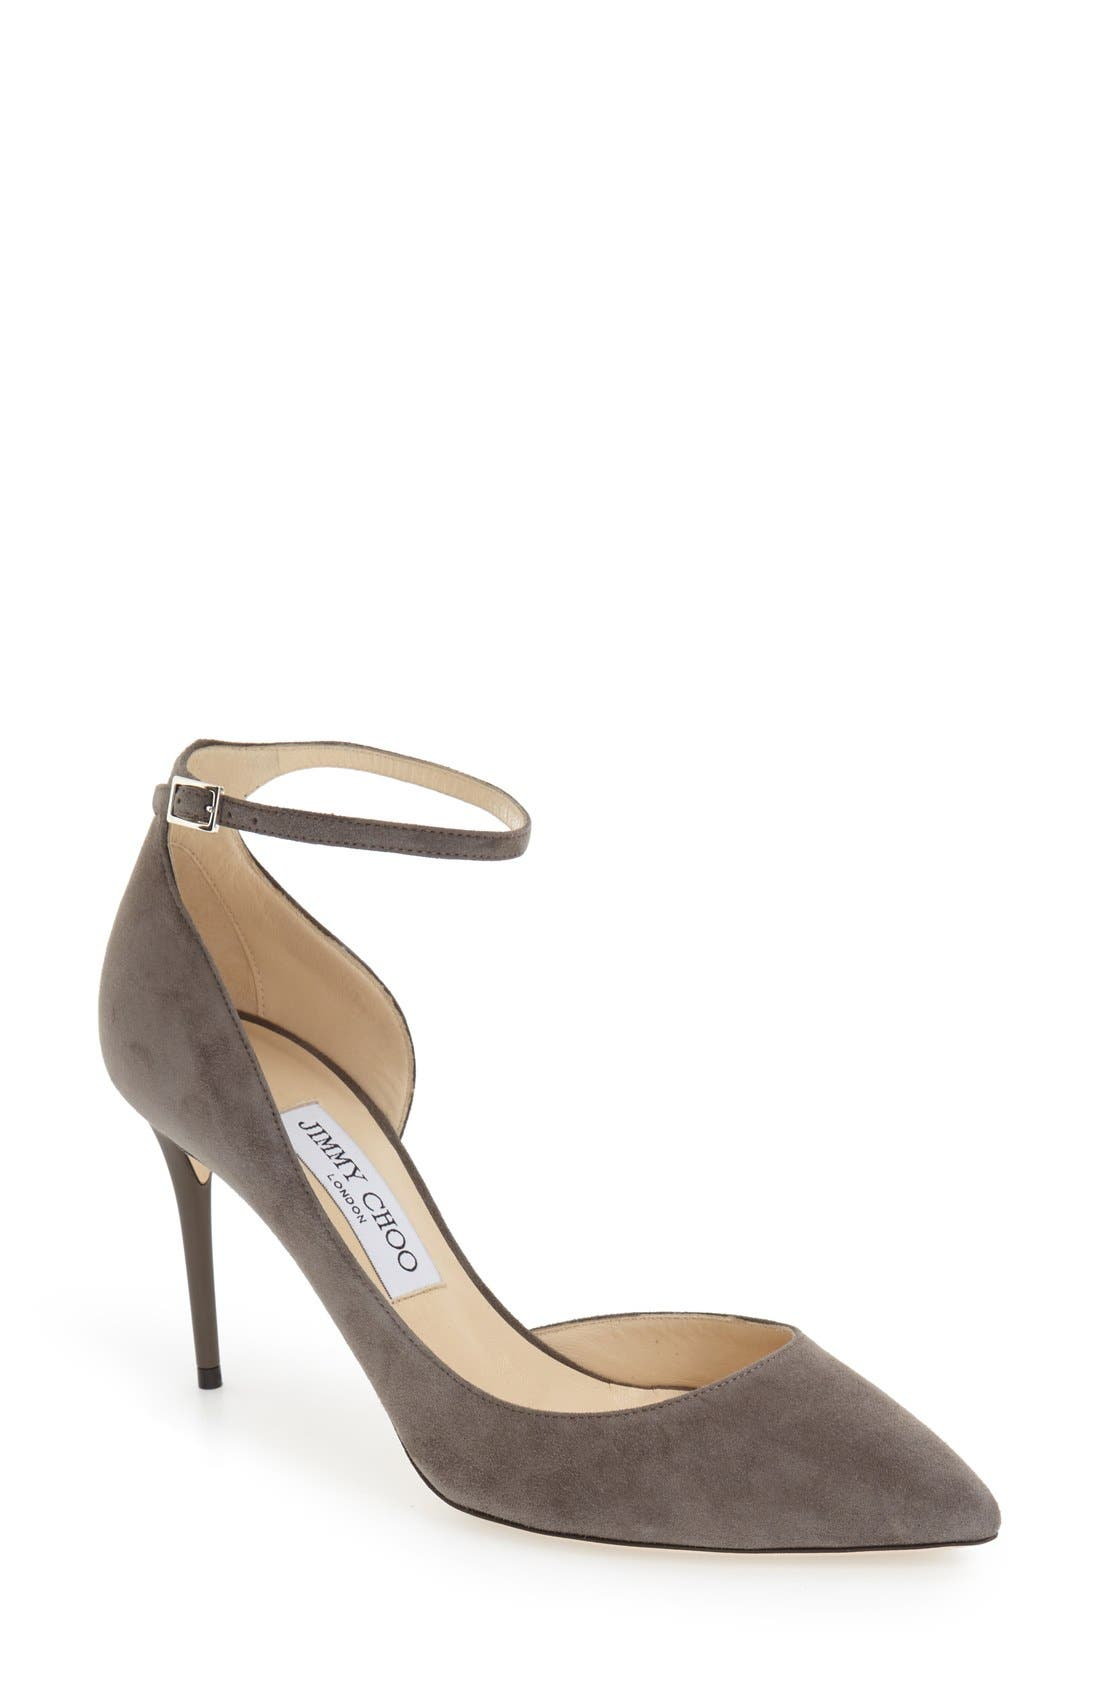 'Lucy' Half d'Orsay Pointy Toe Pump,                             Main thumbnail 3, color,